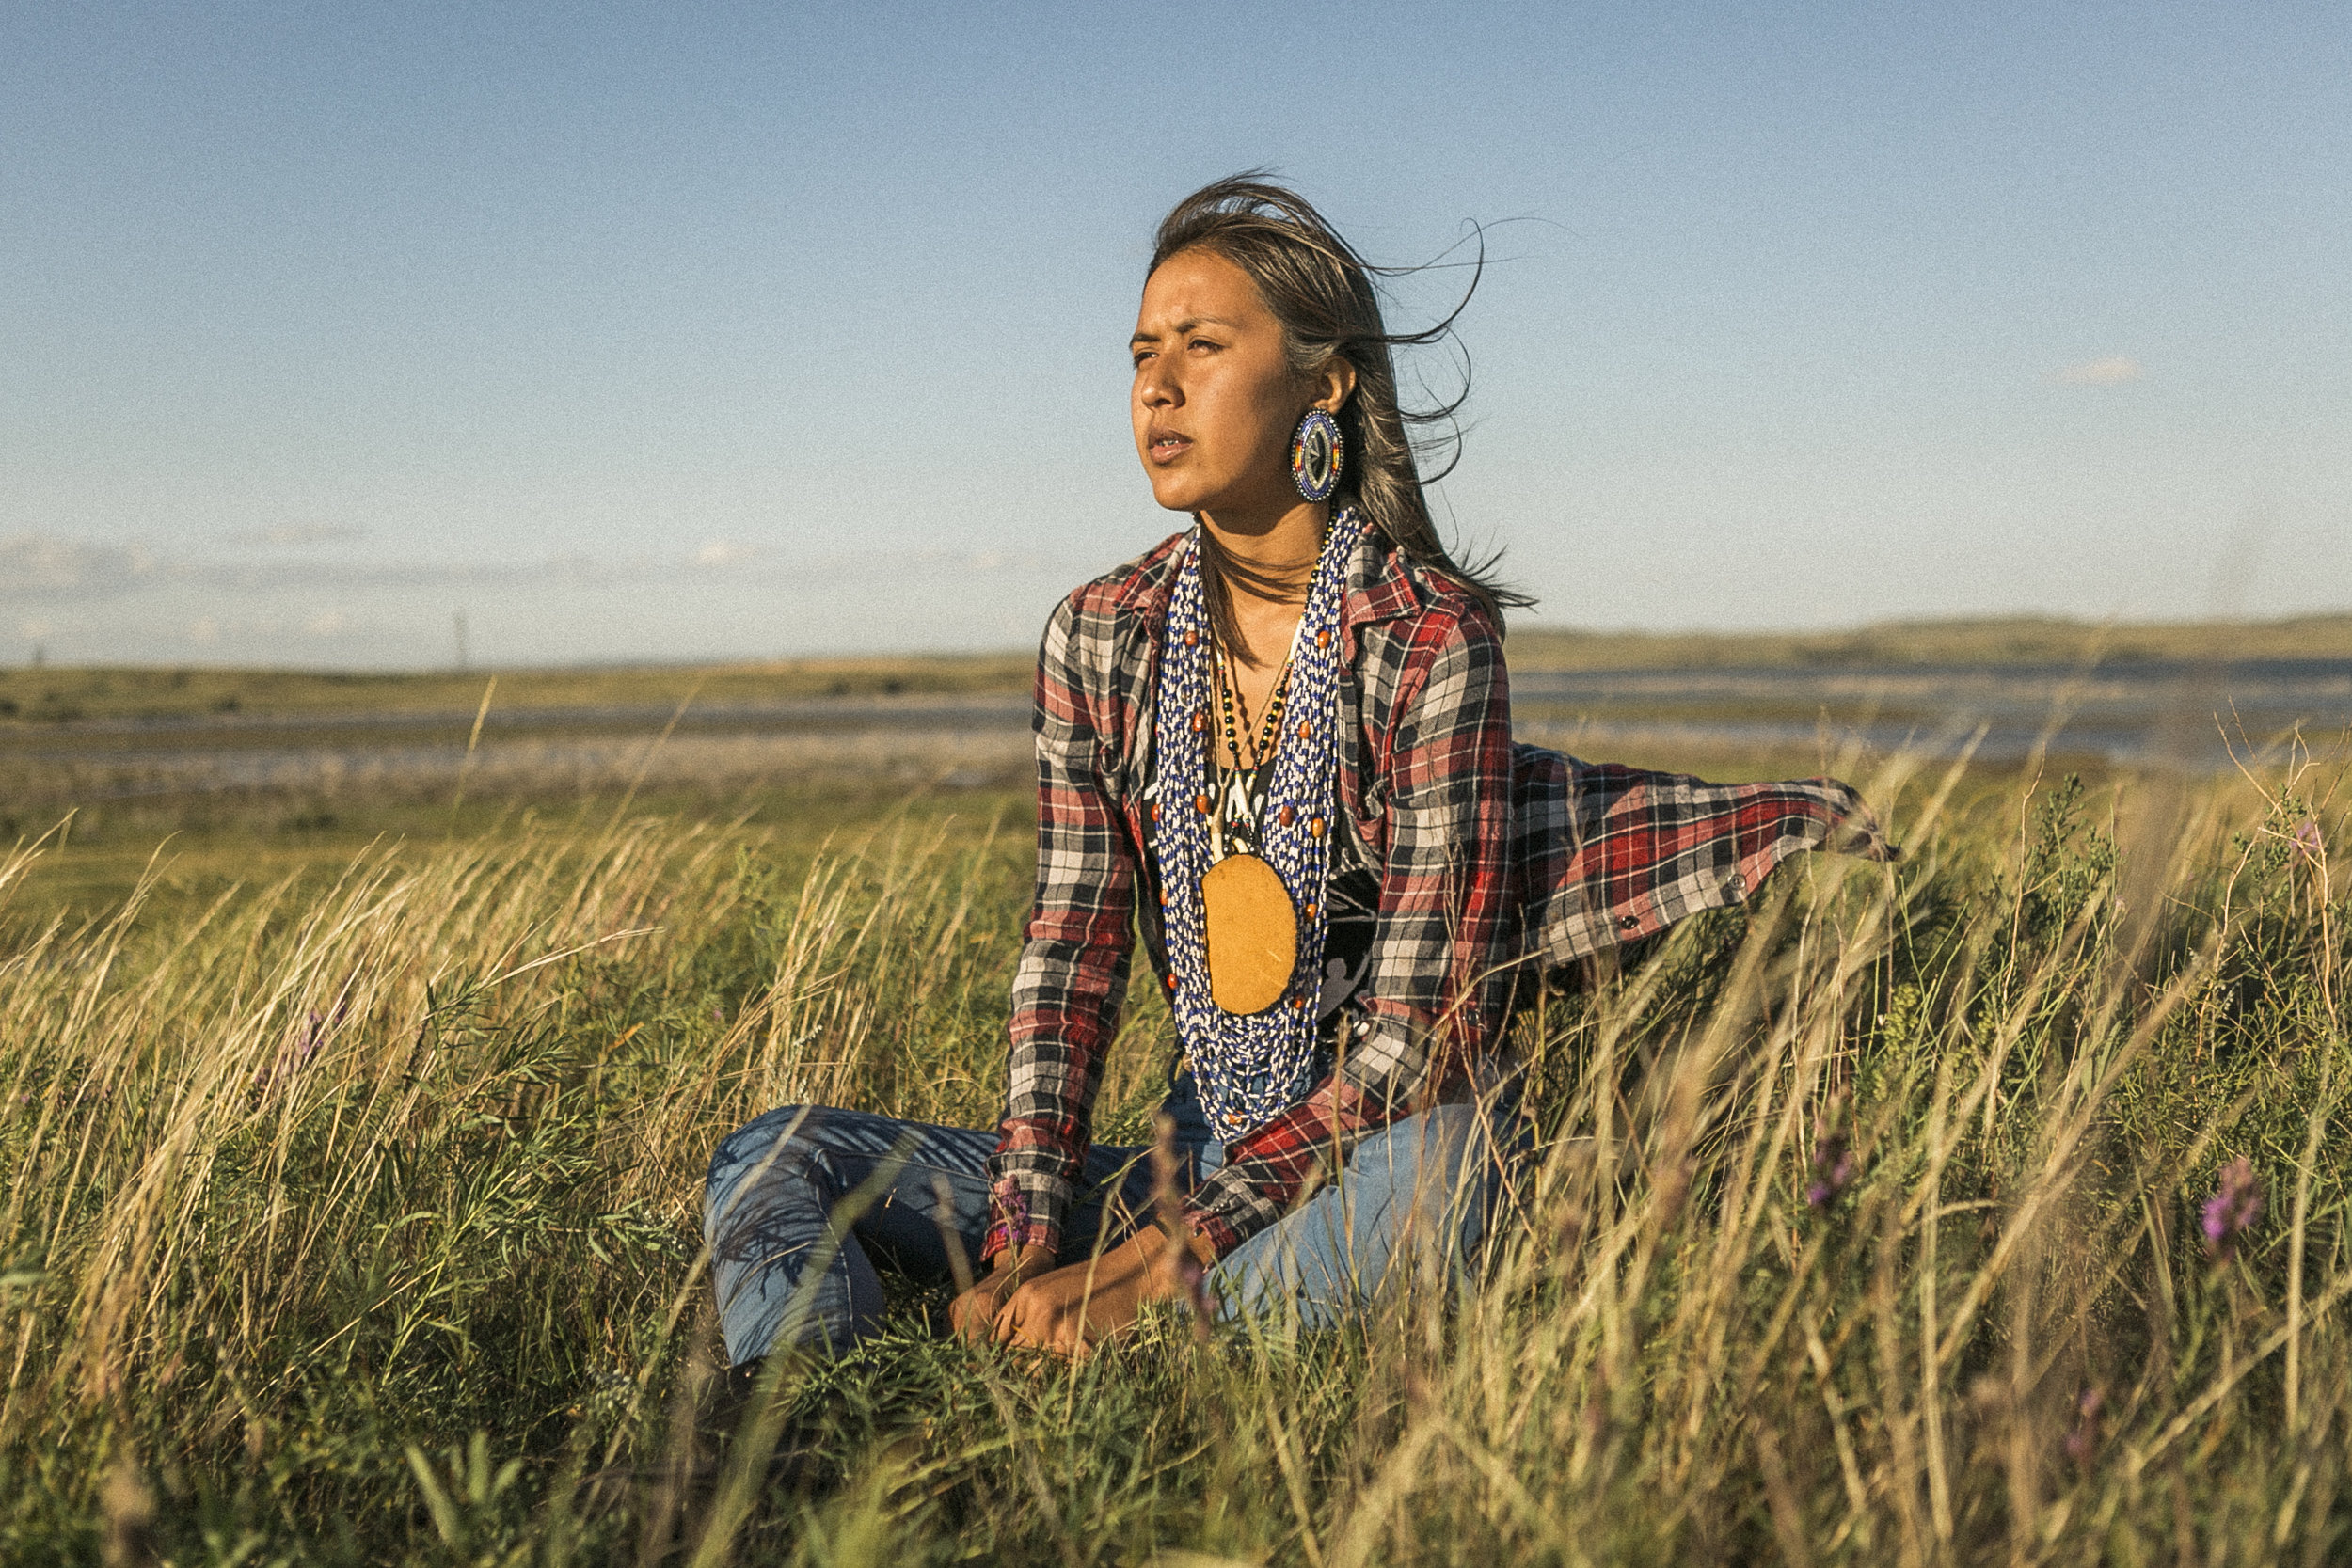 Naelyn Pike , 17, San Carlos Apache reservation: 'Our ancestors are looking at the people with tears in their eyes because they know all the pain and suffering yet to come. They know there is no tomorrow for those yet to be born.'